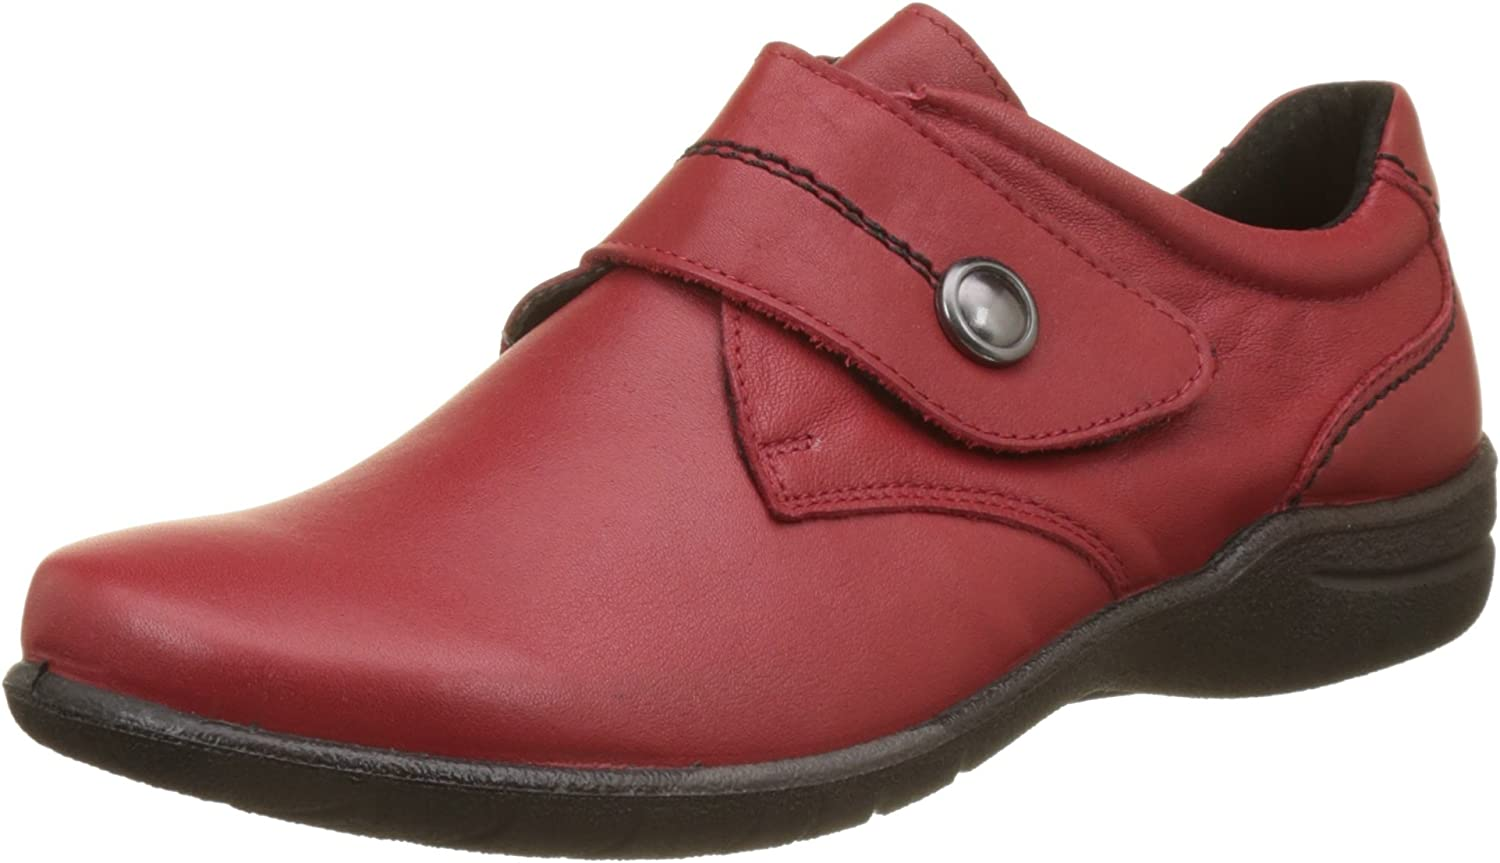 Josef Seibel Fabienne 05, Women's Loafers